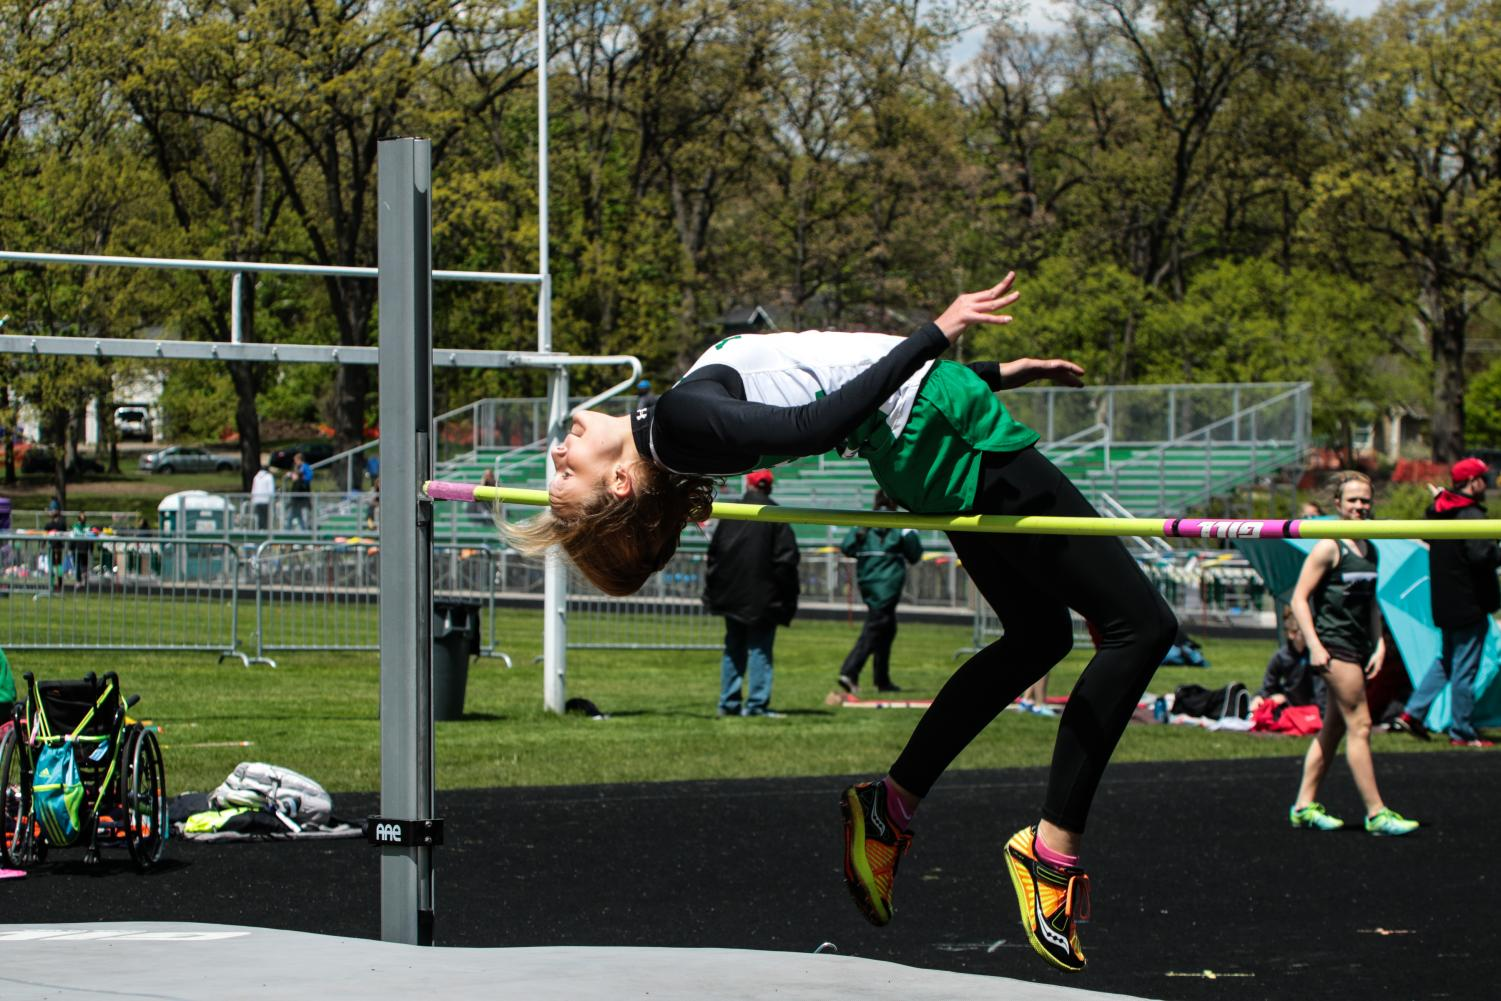 Junior, Nicki Anderson, soars high above the high jump bar during the West Suburban Conference Meet, finishing third for the frosh/soph team. May 3, 2017.